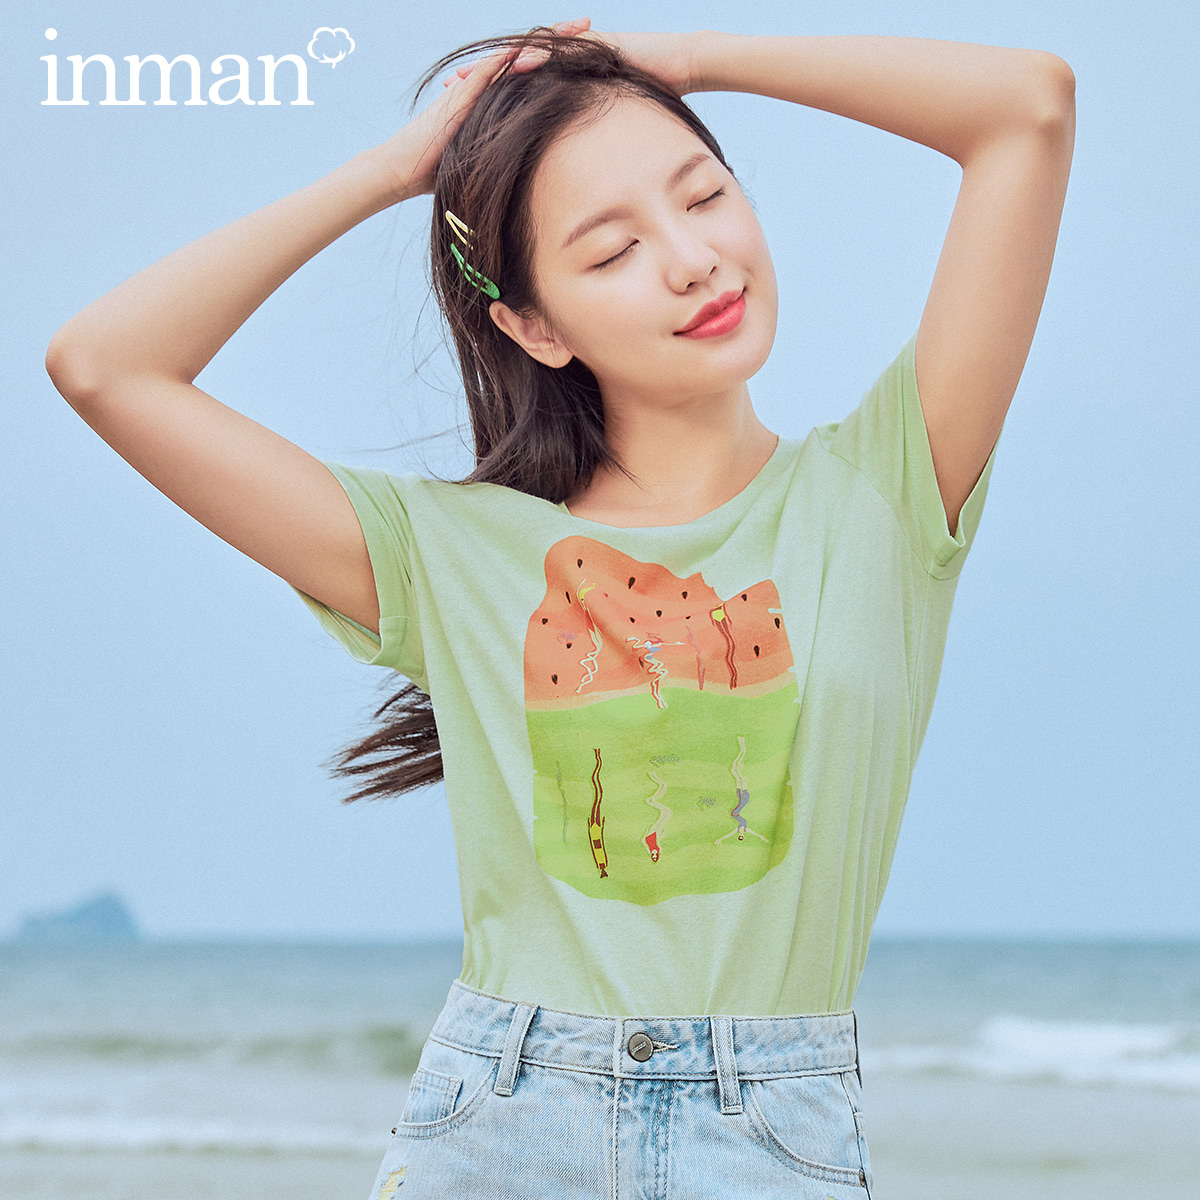 INMAN 2020 Summer New Arrival Pure Cotton Cute Funny Print Casual Short Sleeve T-shirt